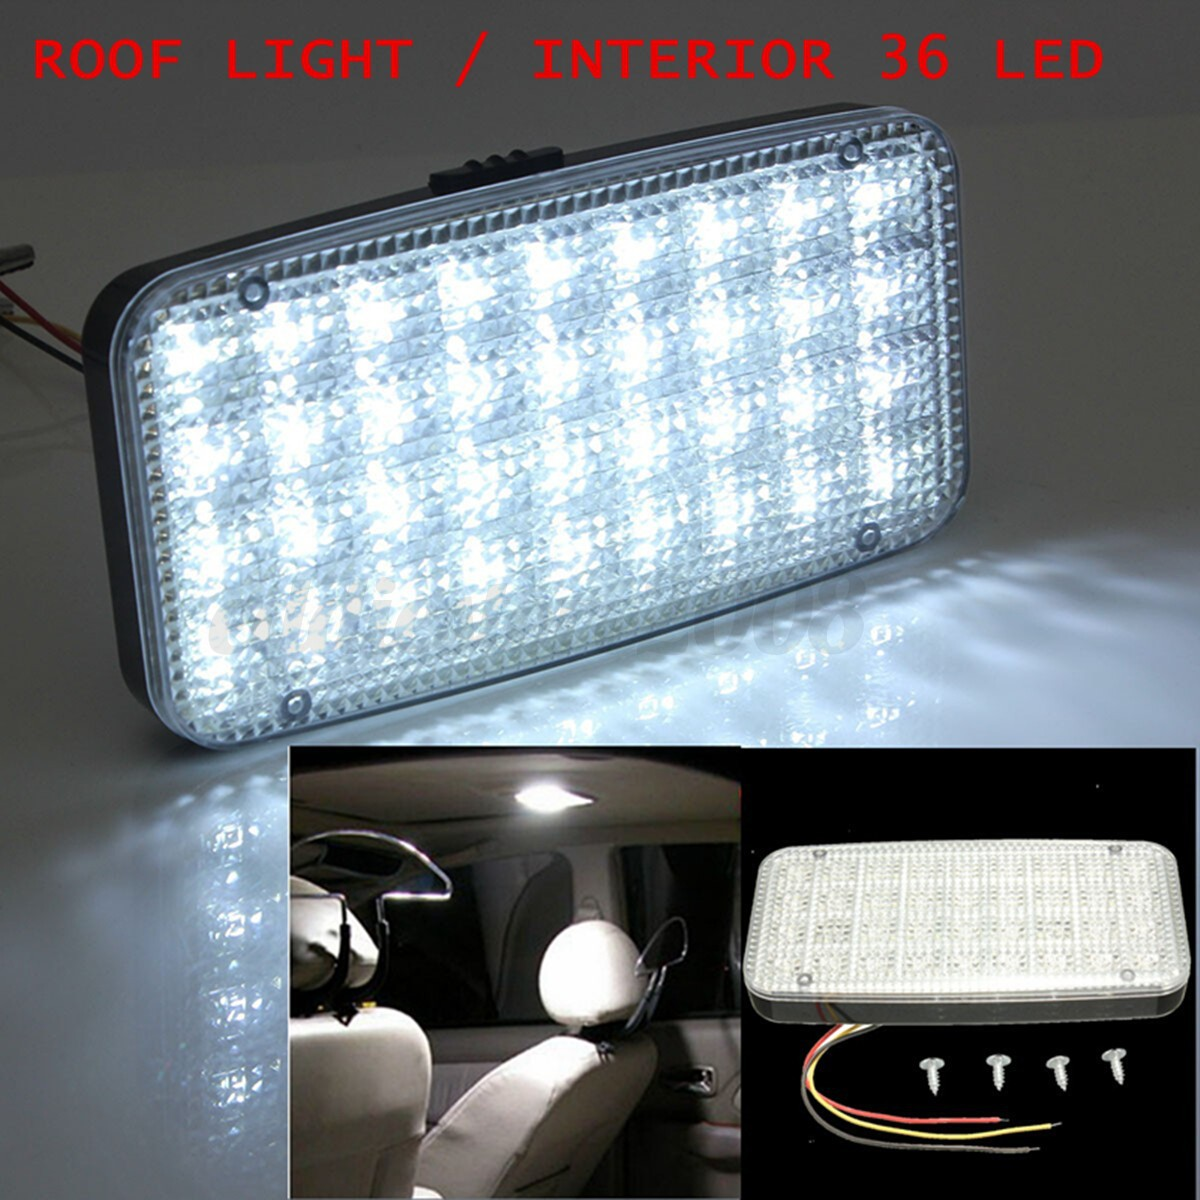 car vehicle ceiling dome roof interior light white 12v 36 led reading cabin lamp ebay. Black Bedroom Furniture Sets. Home Design Ideas